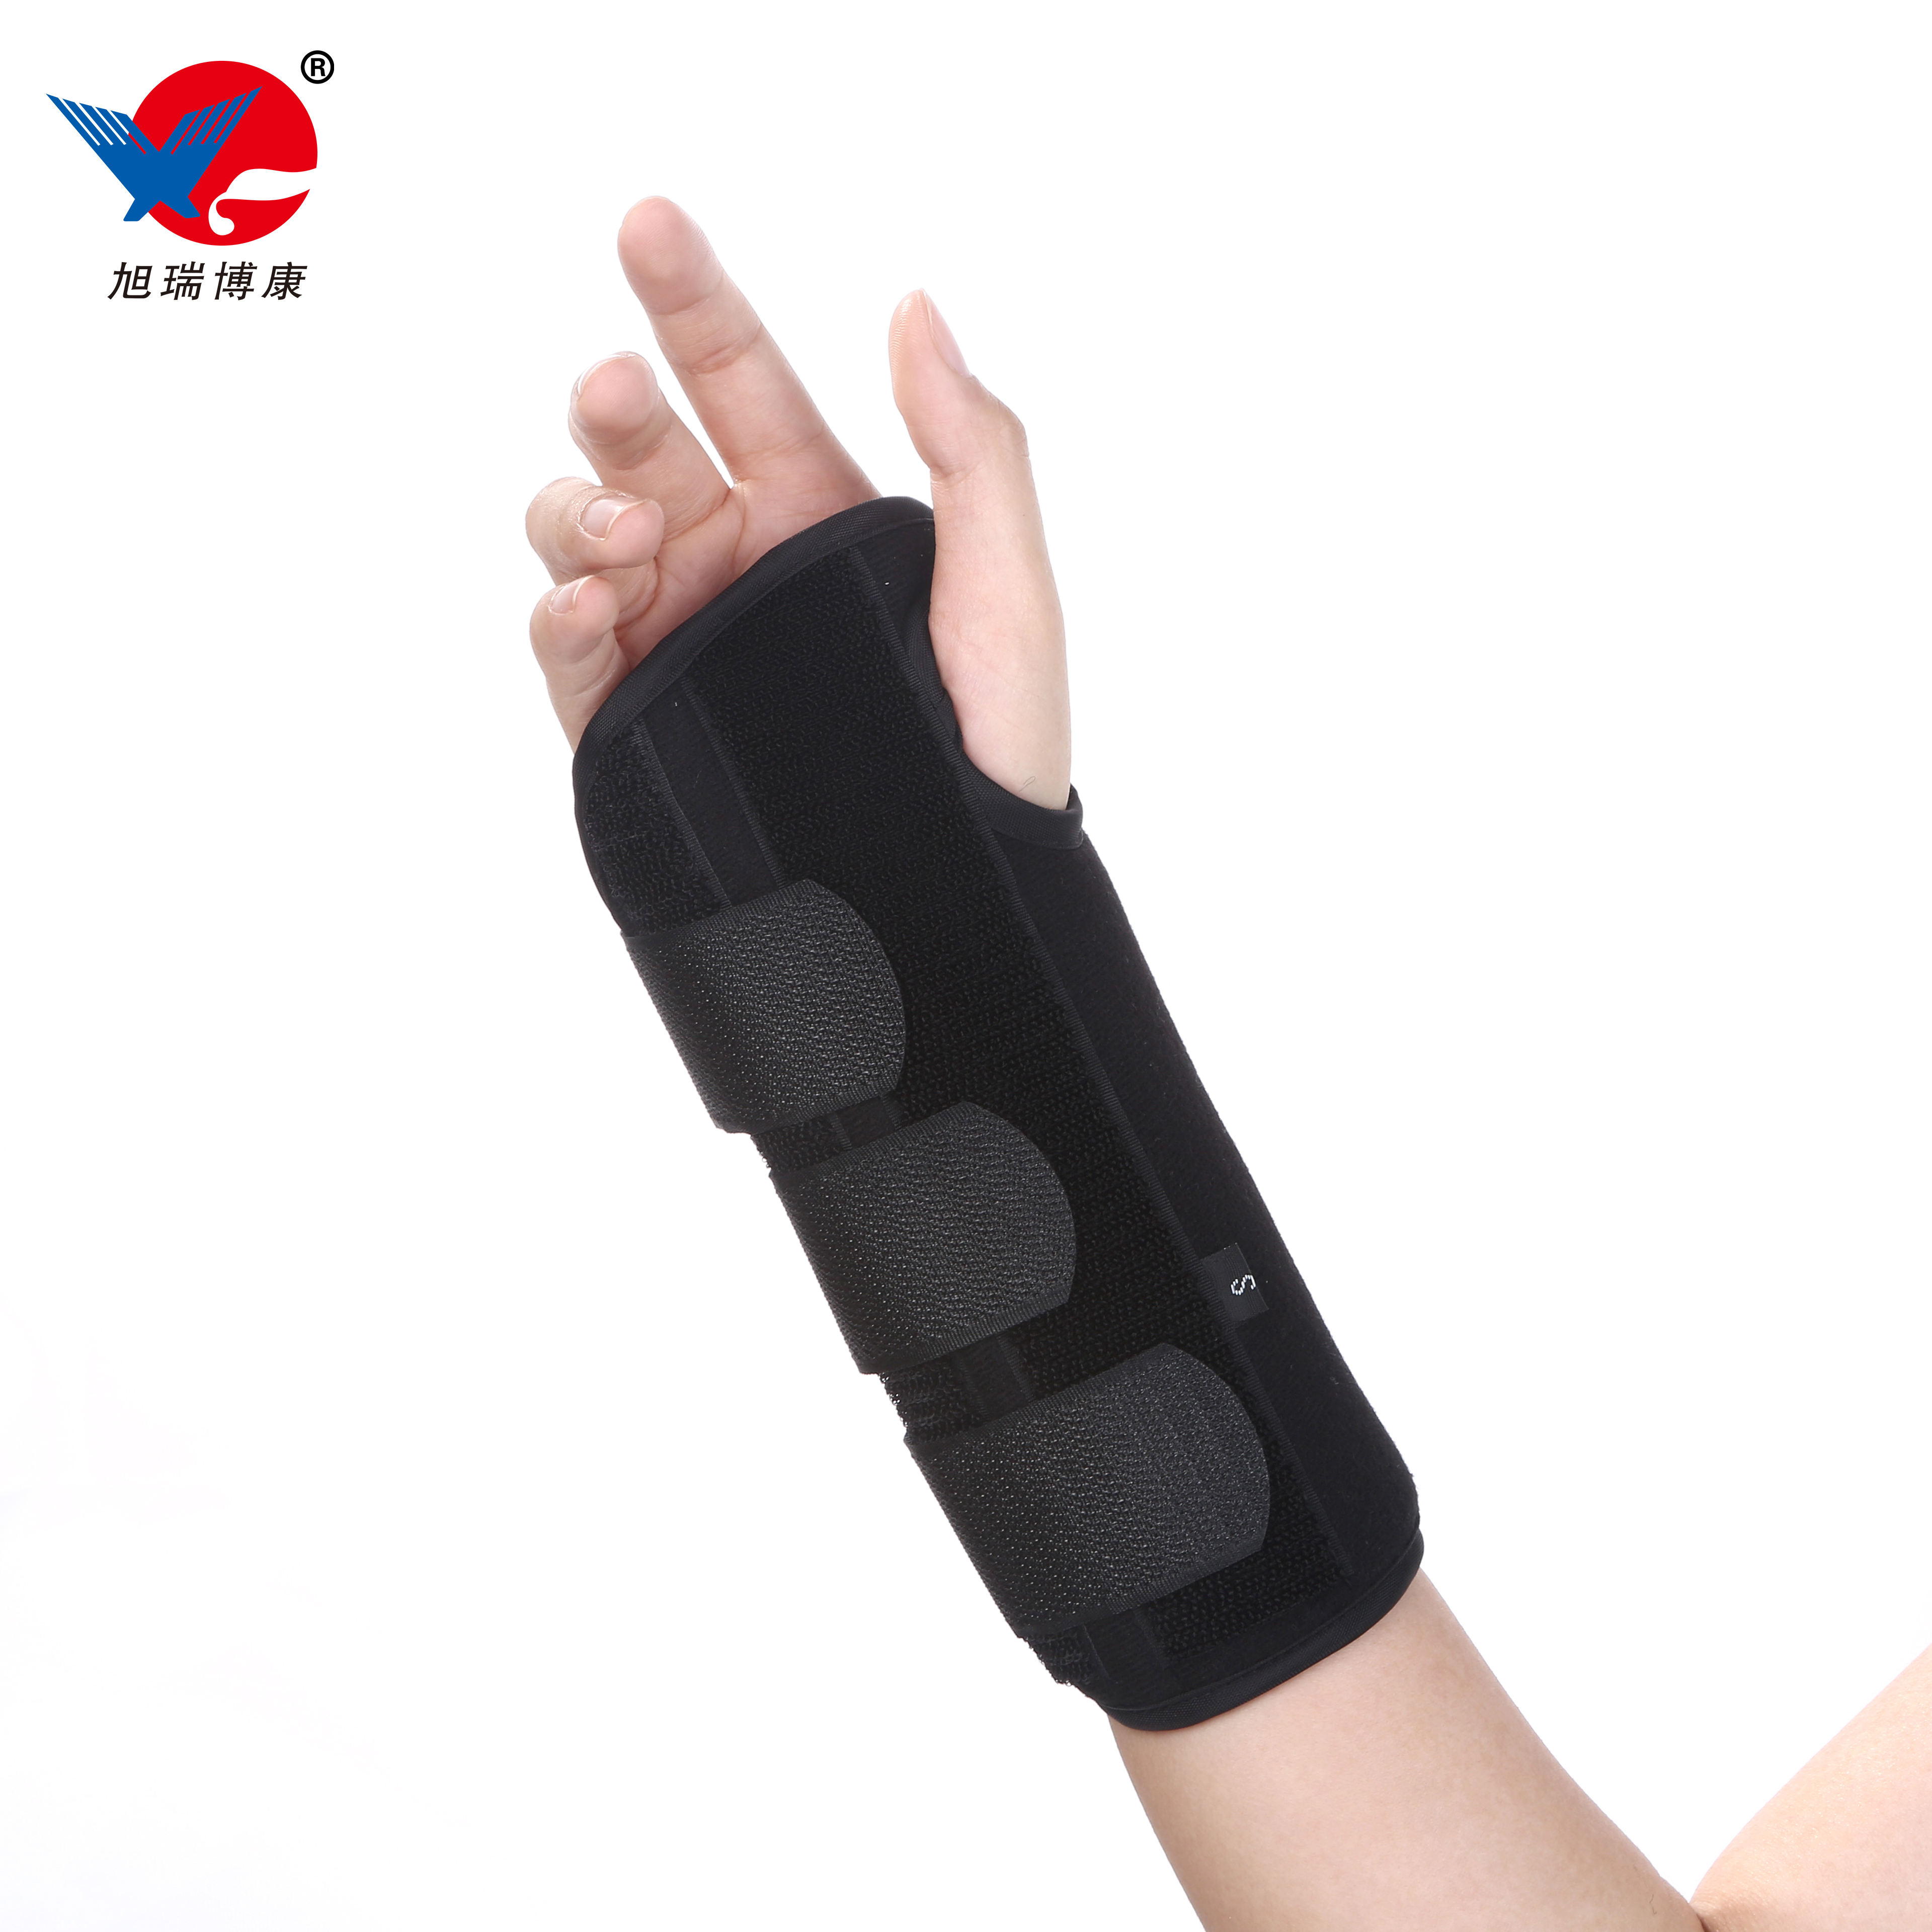 Medical orthopedic Night Sleep Brace Splint Wrist Brace Carpal Tunnel